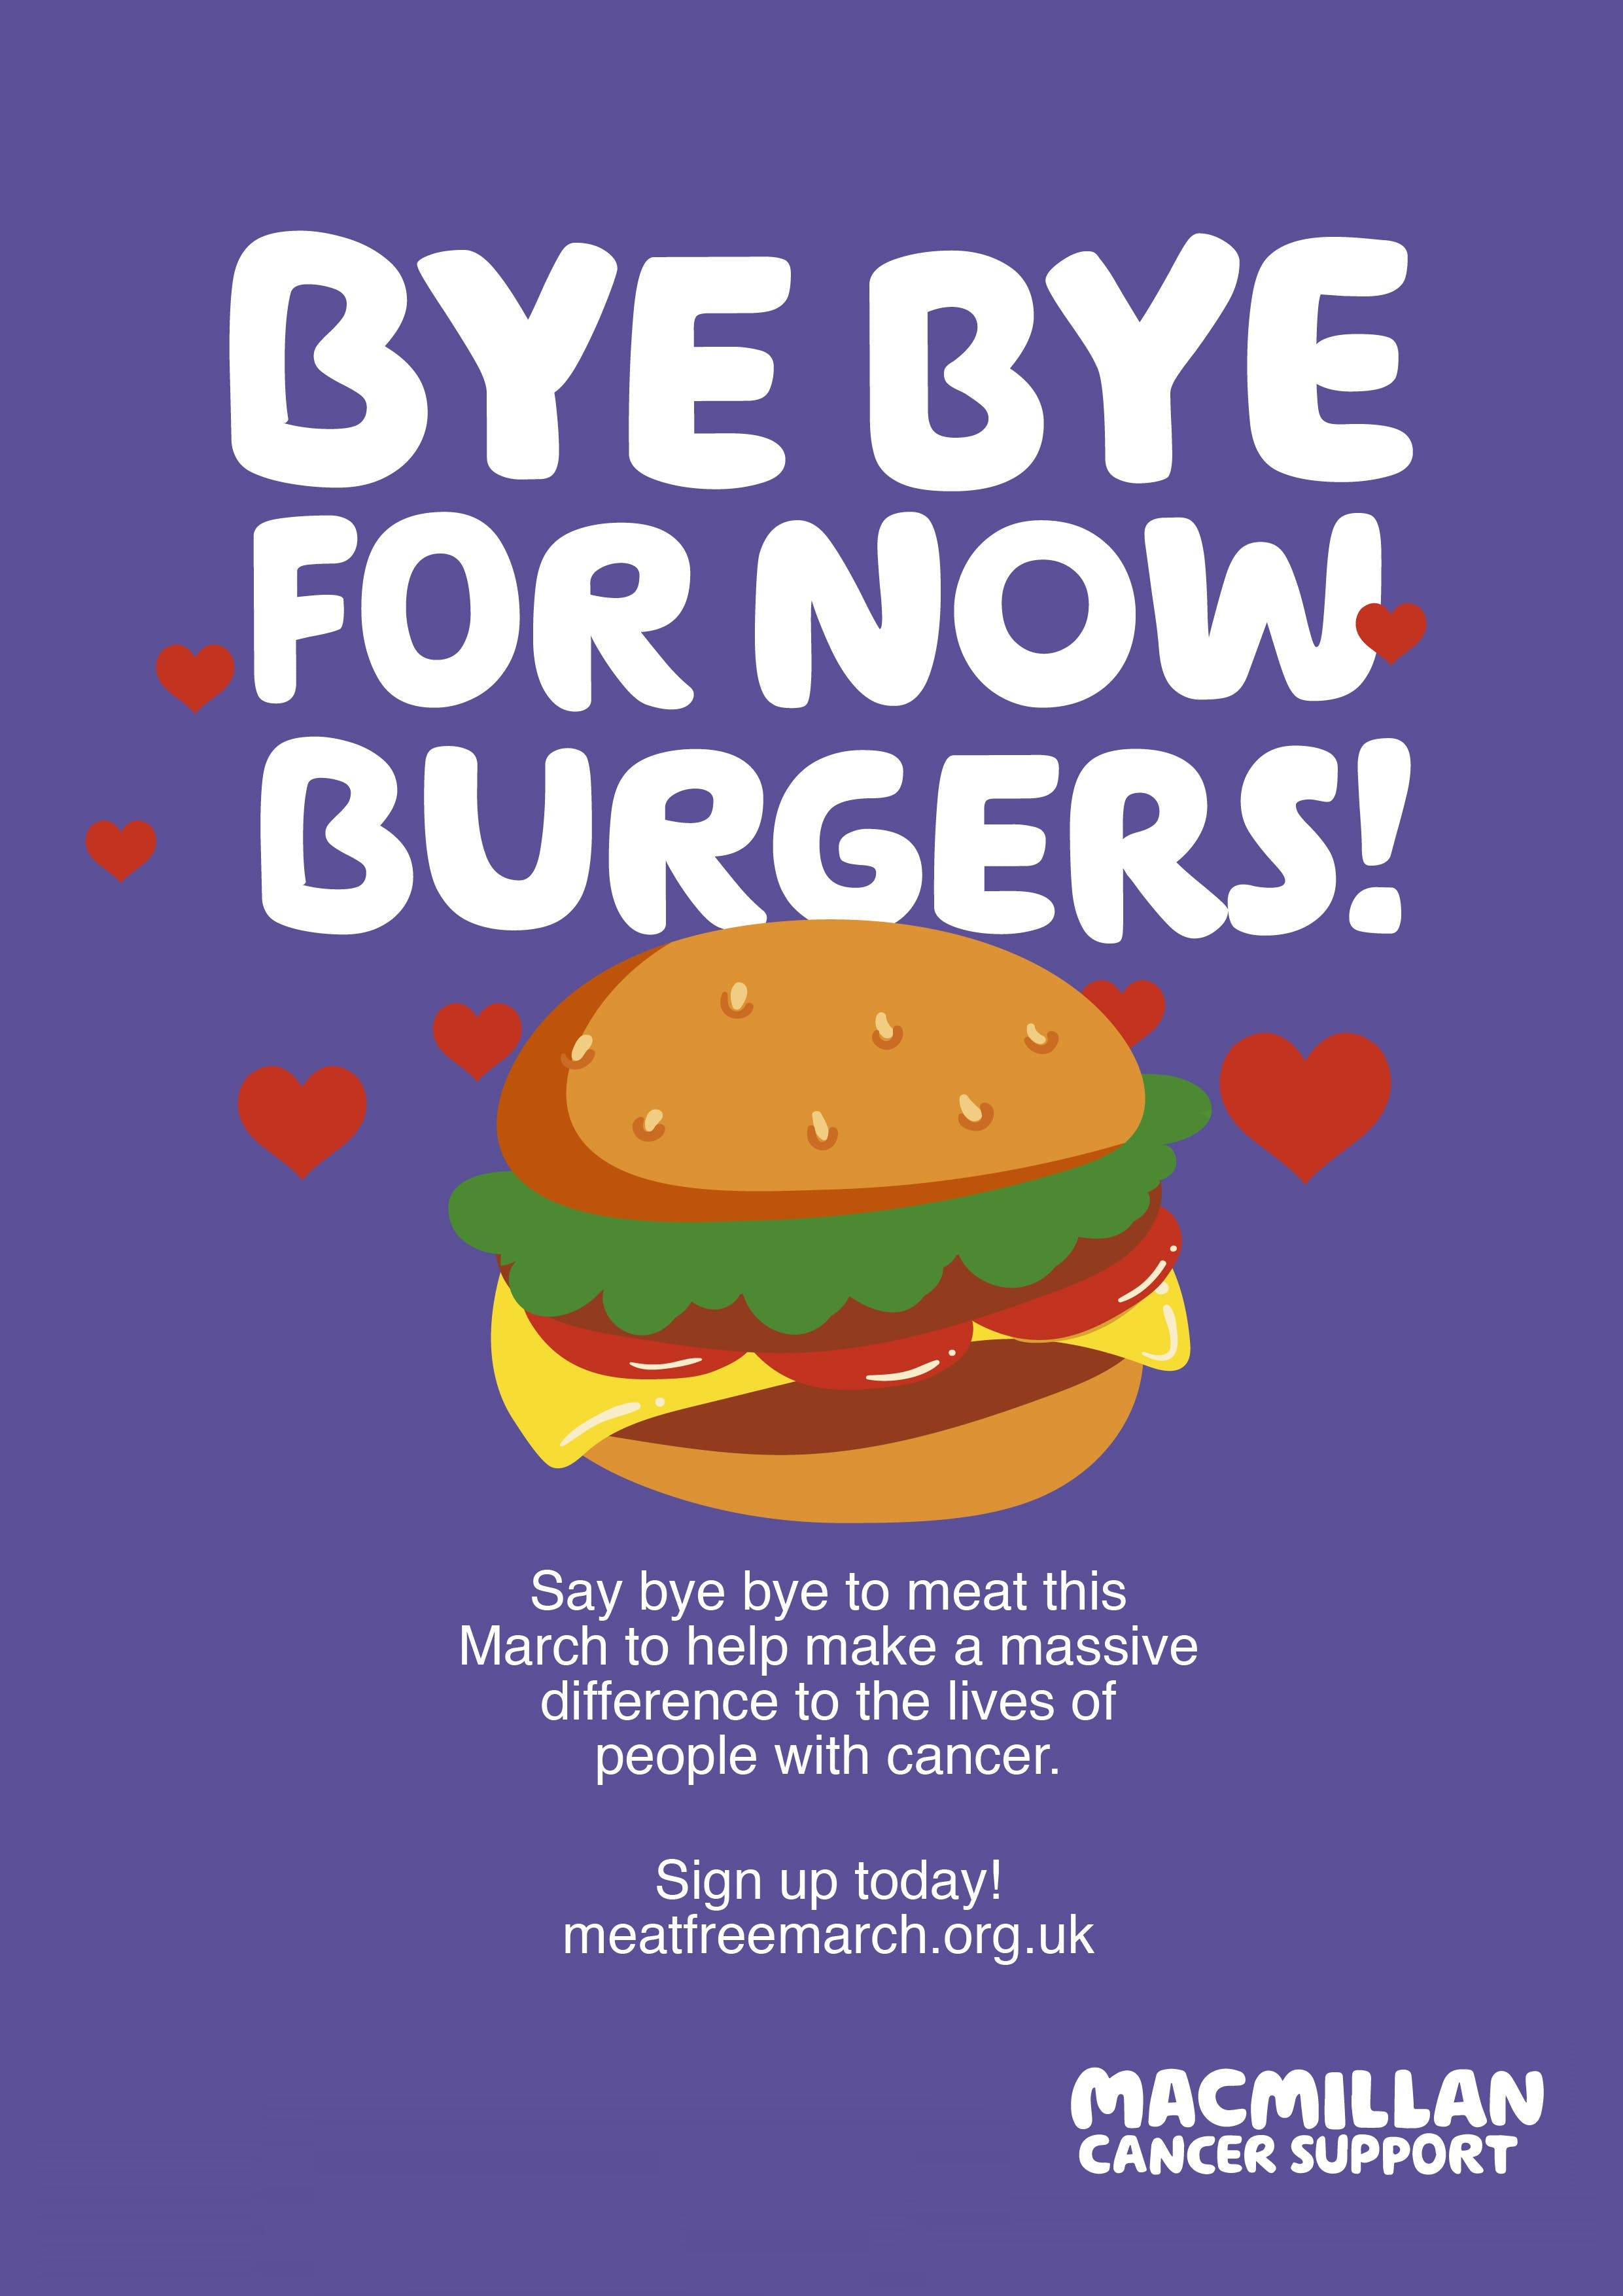 purple background text: bye bye for now burgers